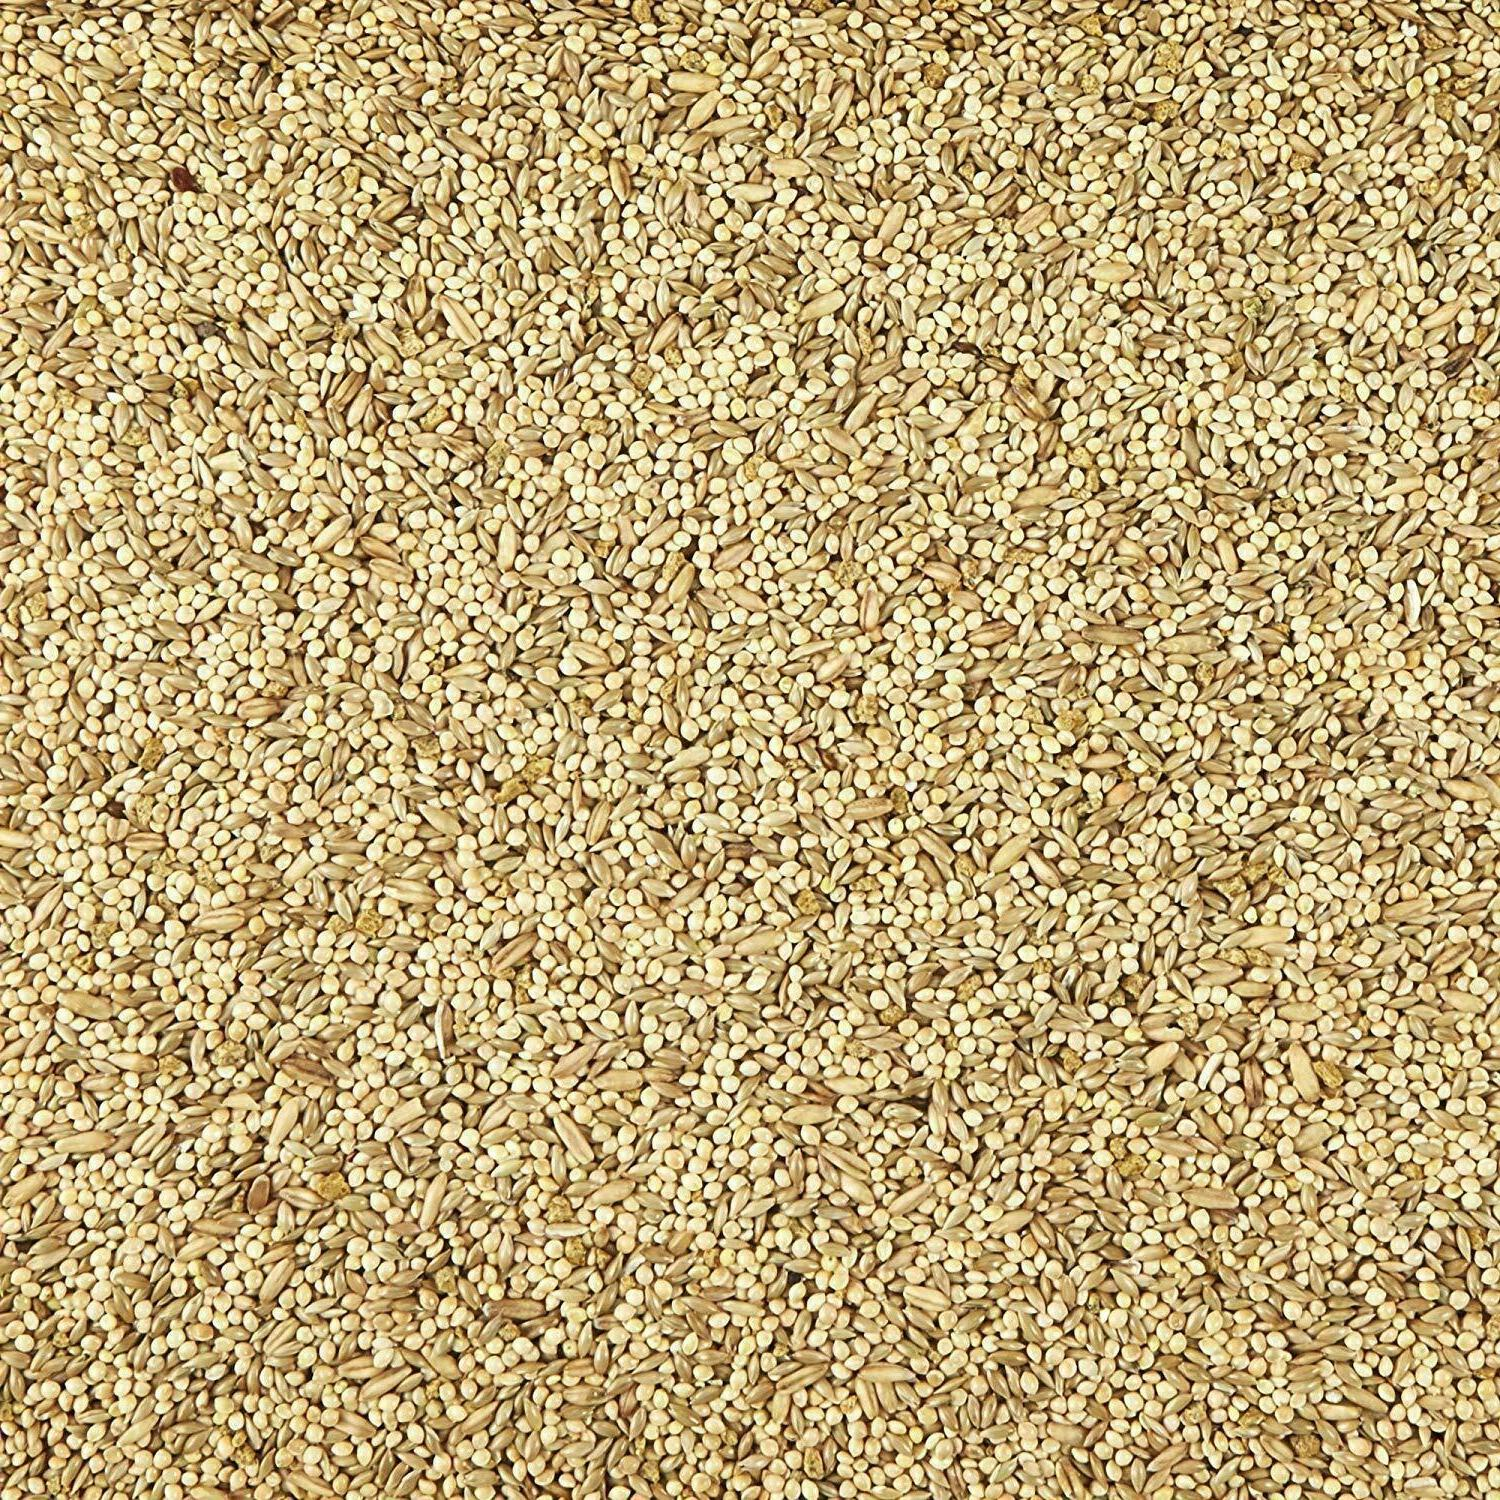 Bird for Parrots 25lb Natural Seeds Grains and Pellets Supreme